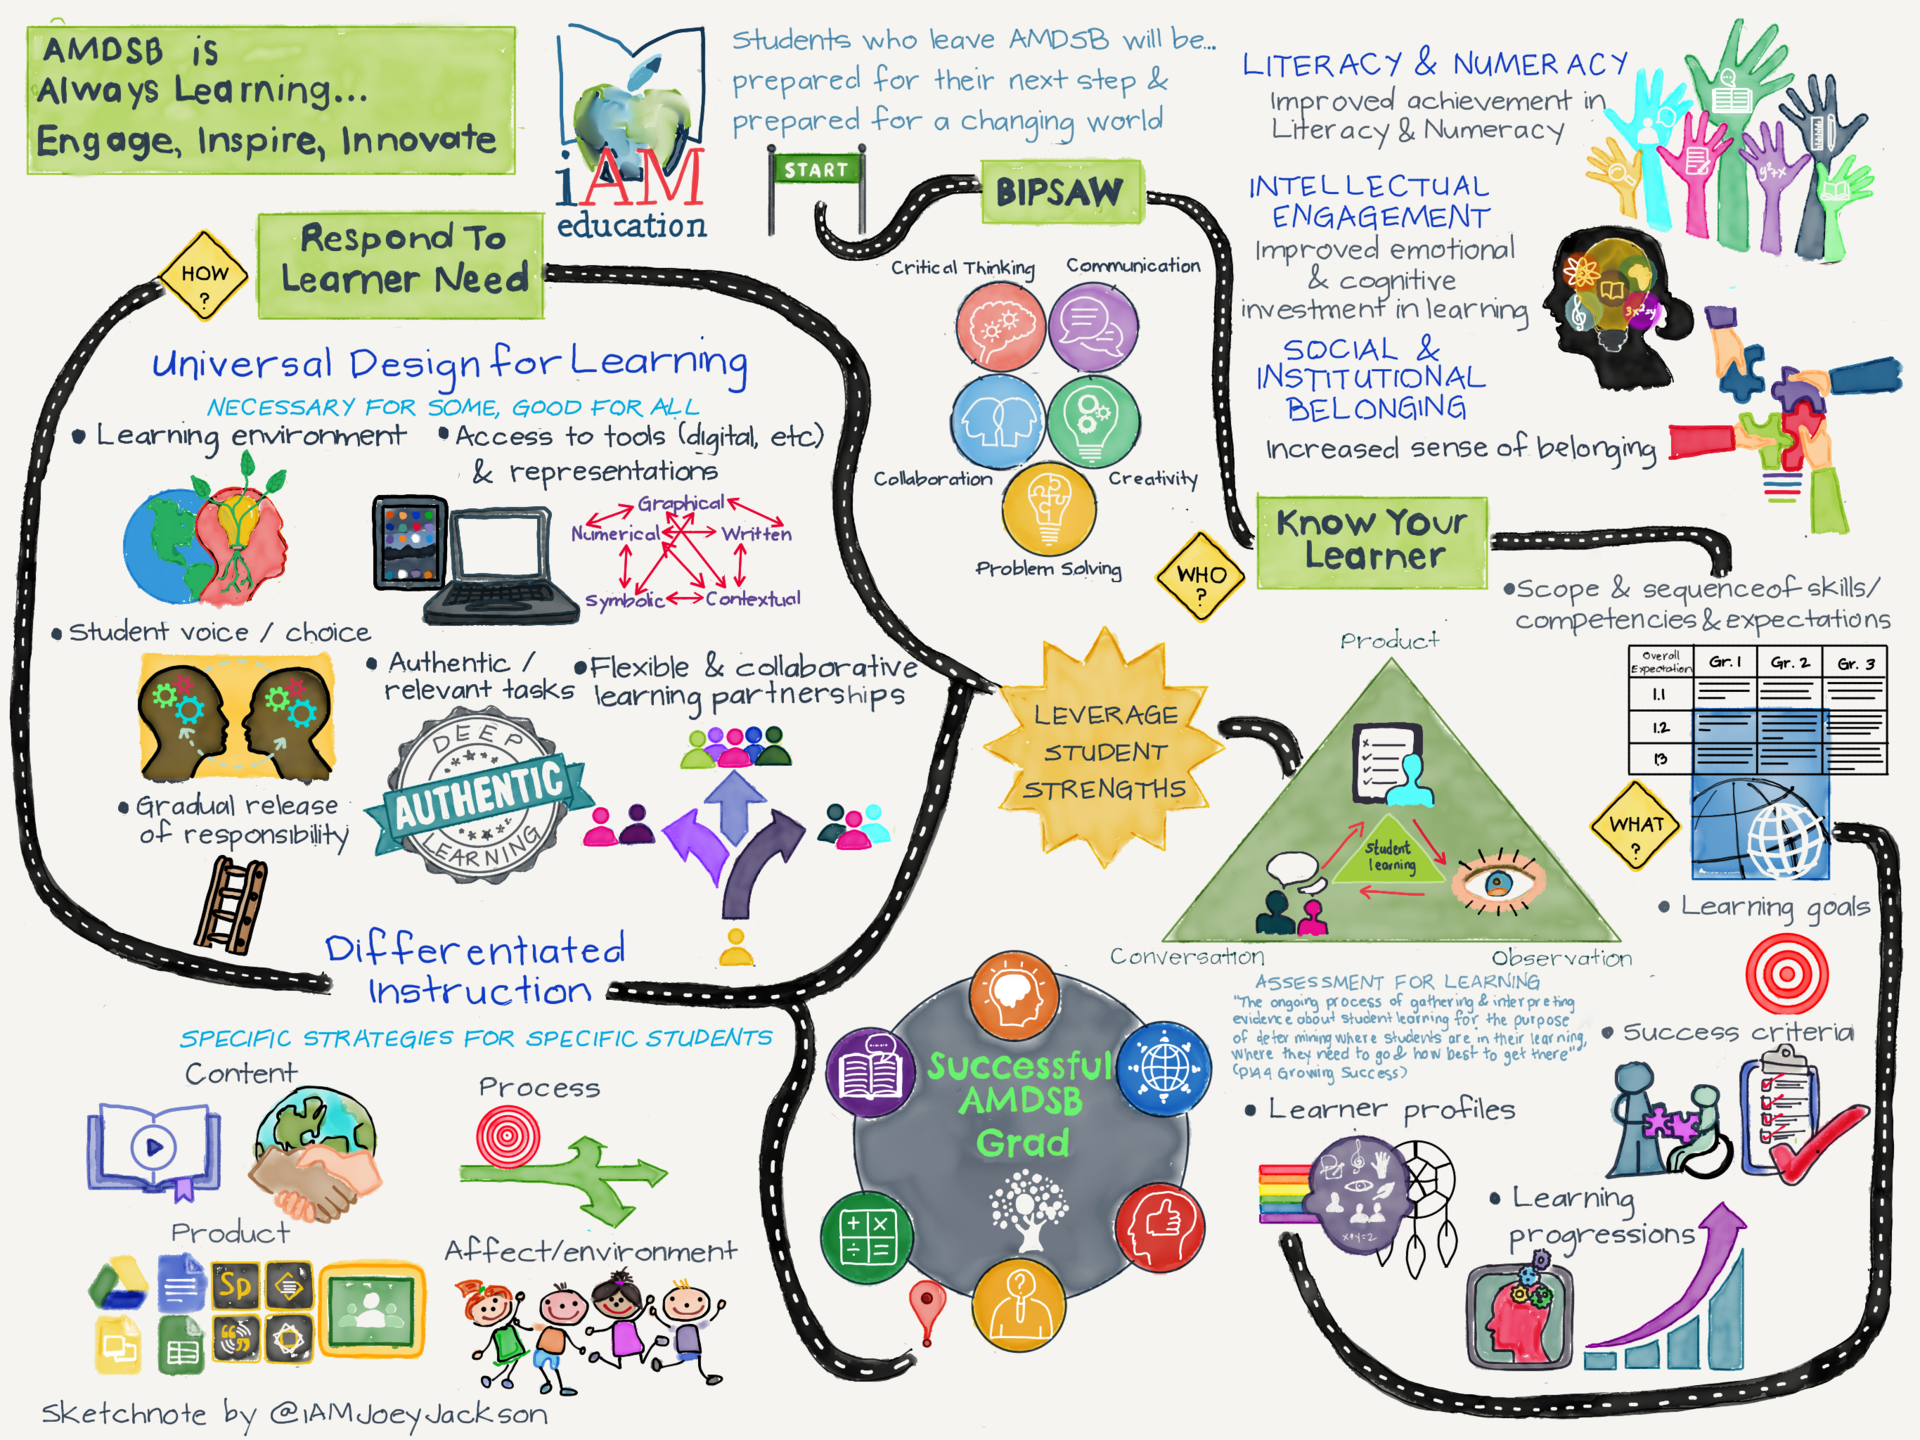 BIPSAW Mindmap illustration depicting the path of a successful AMDSB grad. Includes Literacy & Numeracy, Intellectual Engagement, Social & Institutional Belonging, leveraging student strengths, Differentiated Instruction, Universal Design for Learning and much more.